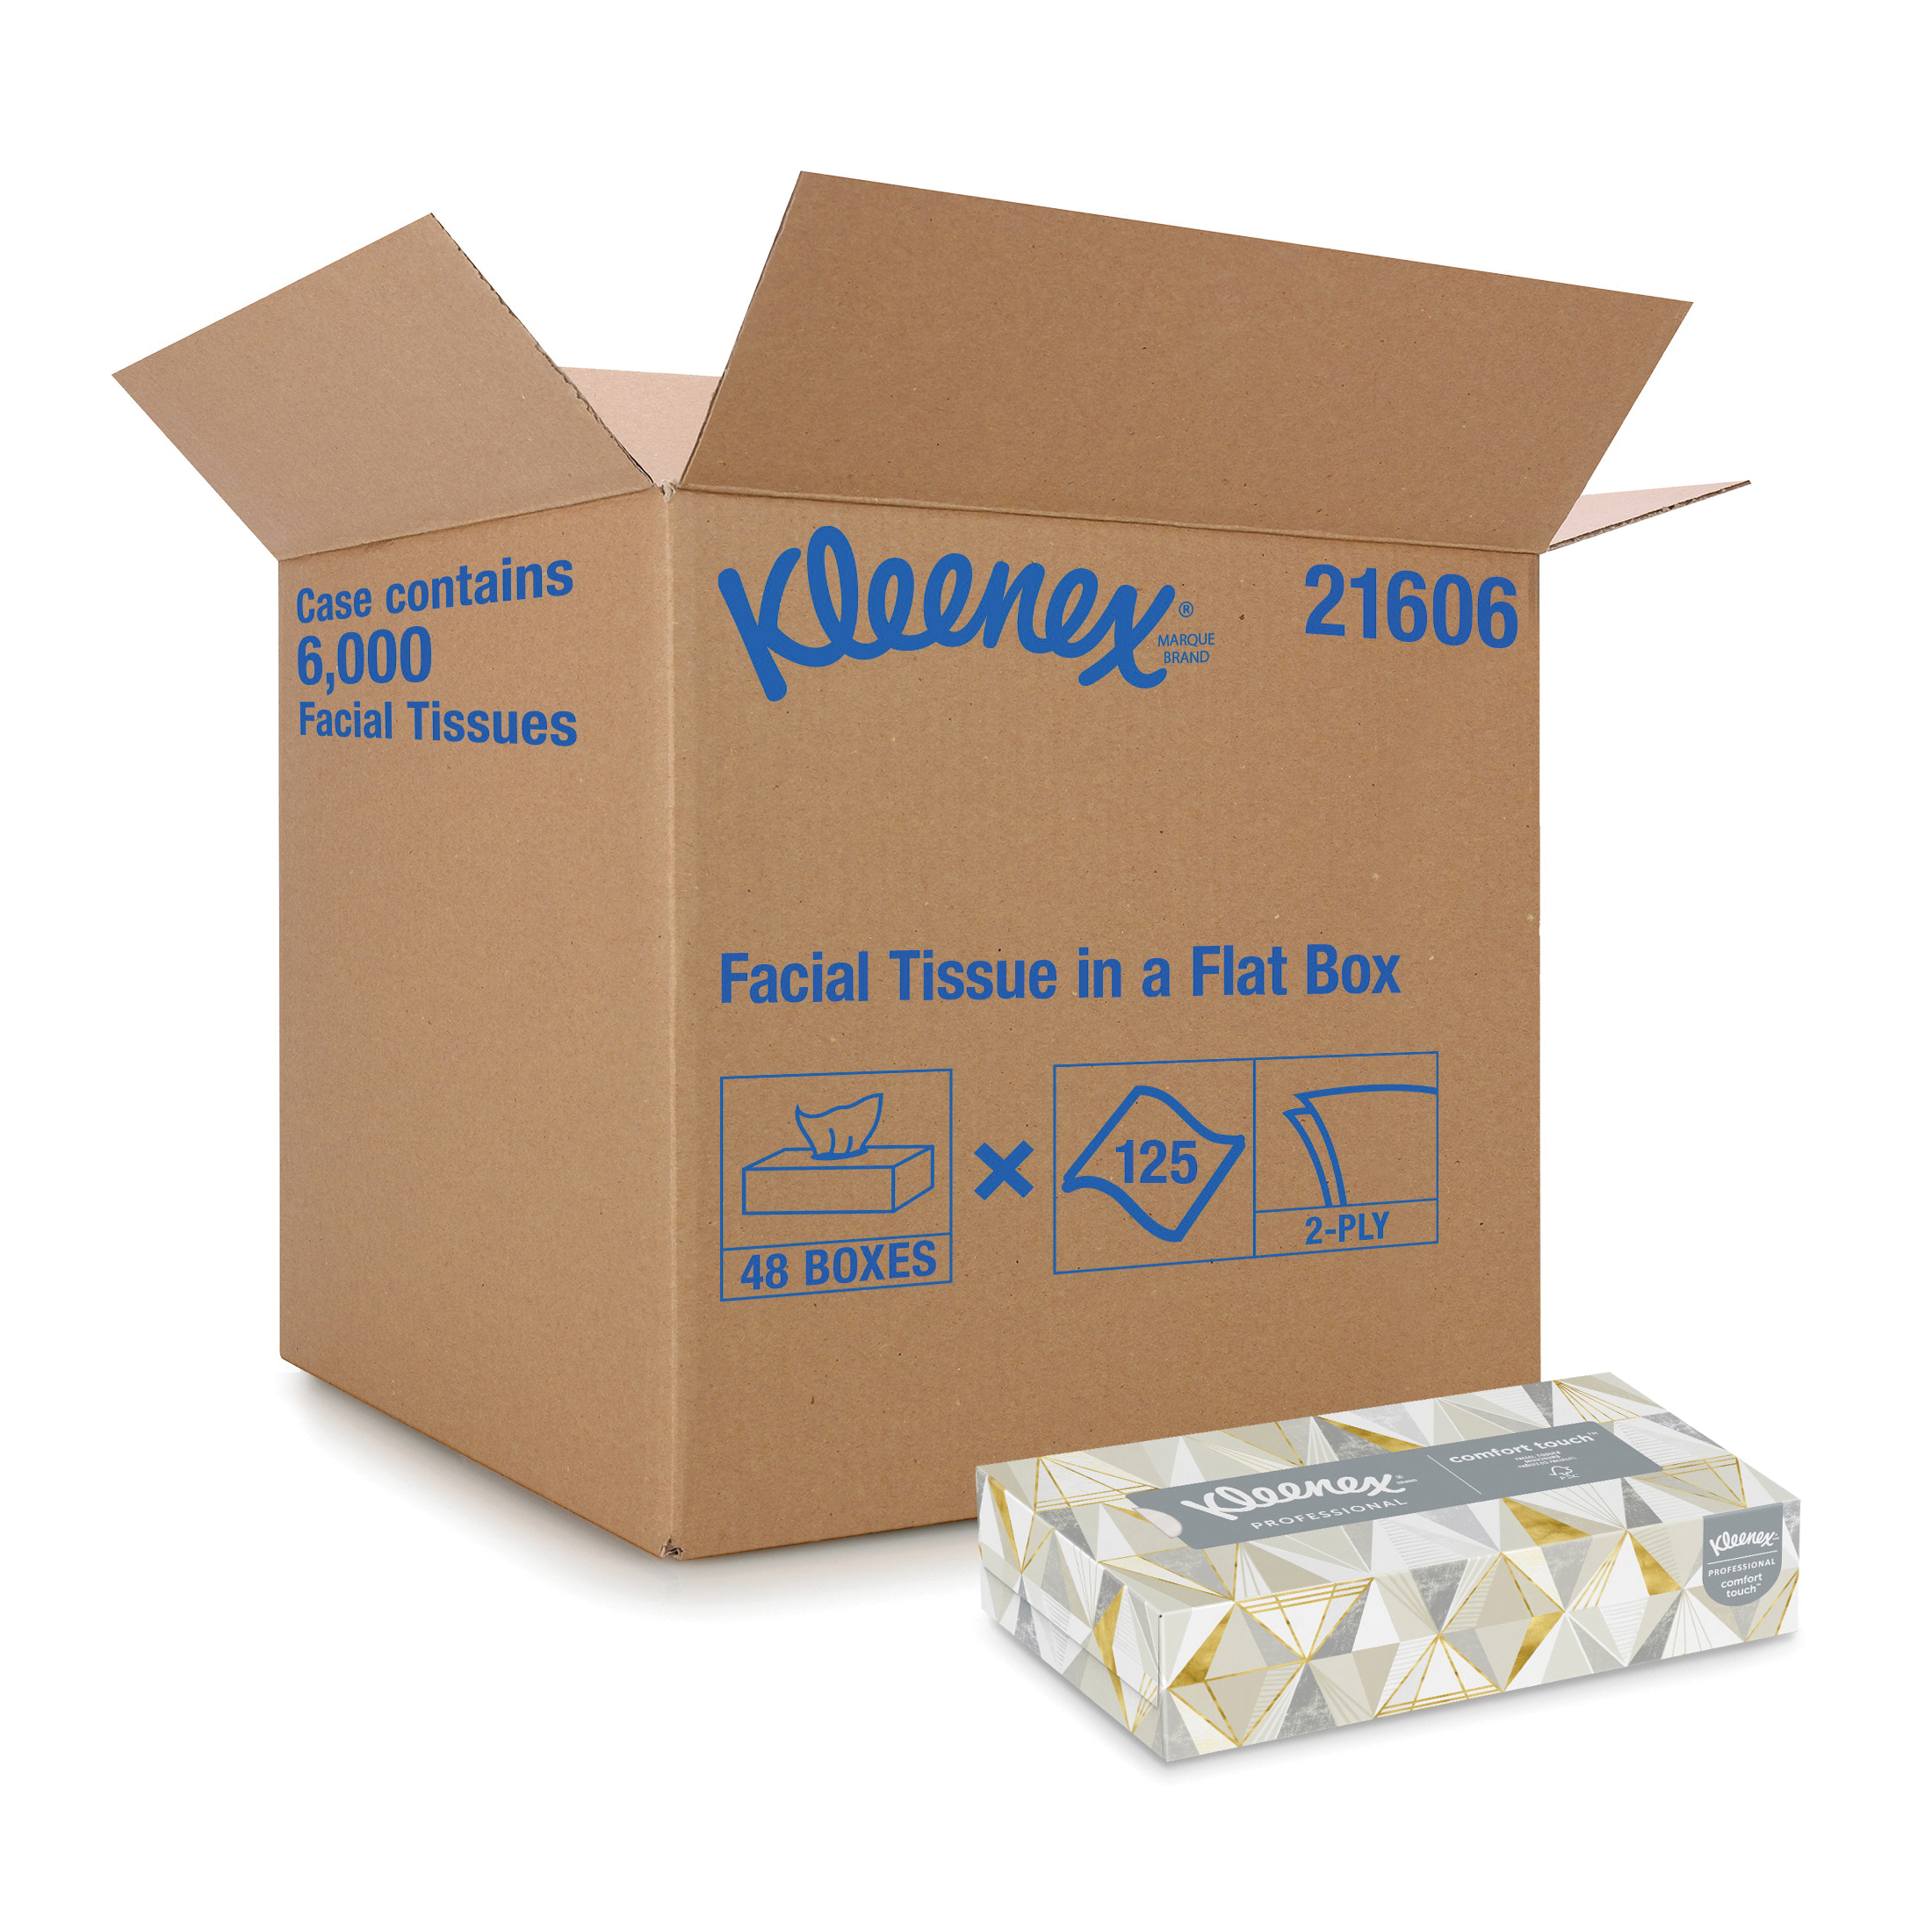 Scott® SURPASS* 21340 Recycled Facial Tissue, 100 Sheets Capacity, Paper, White